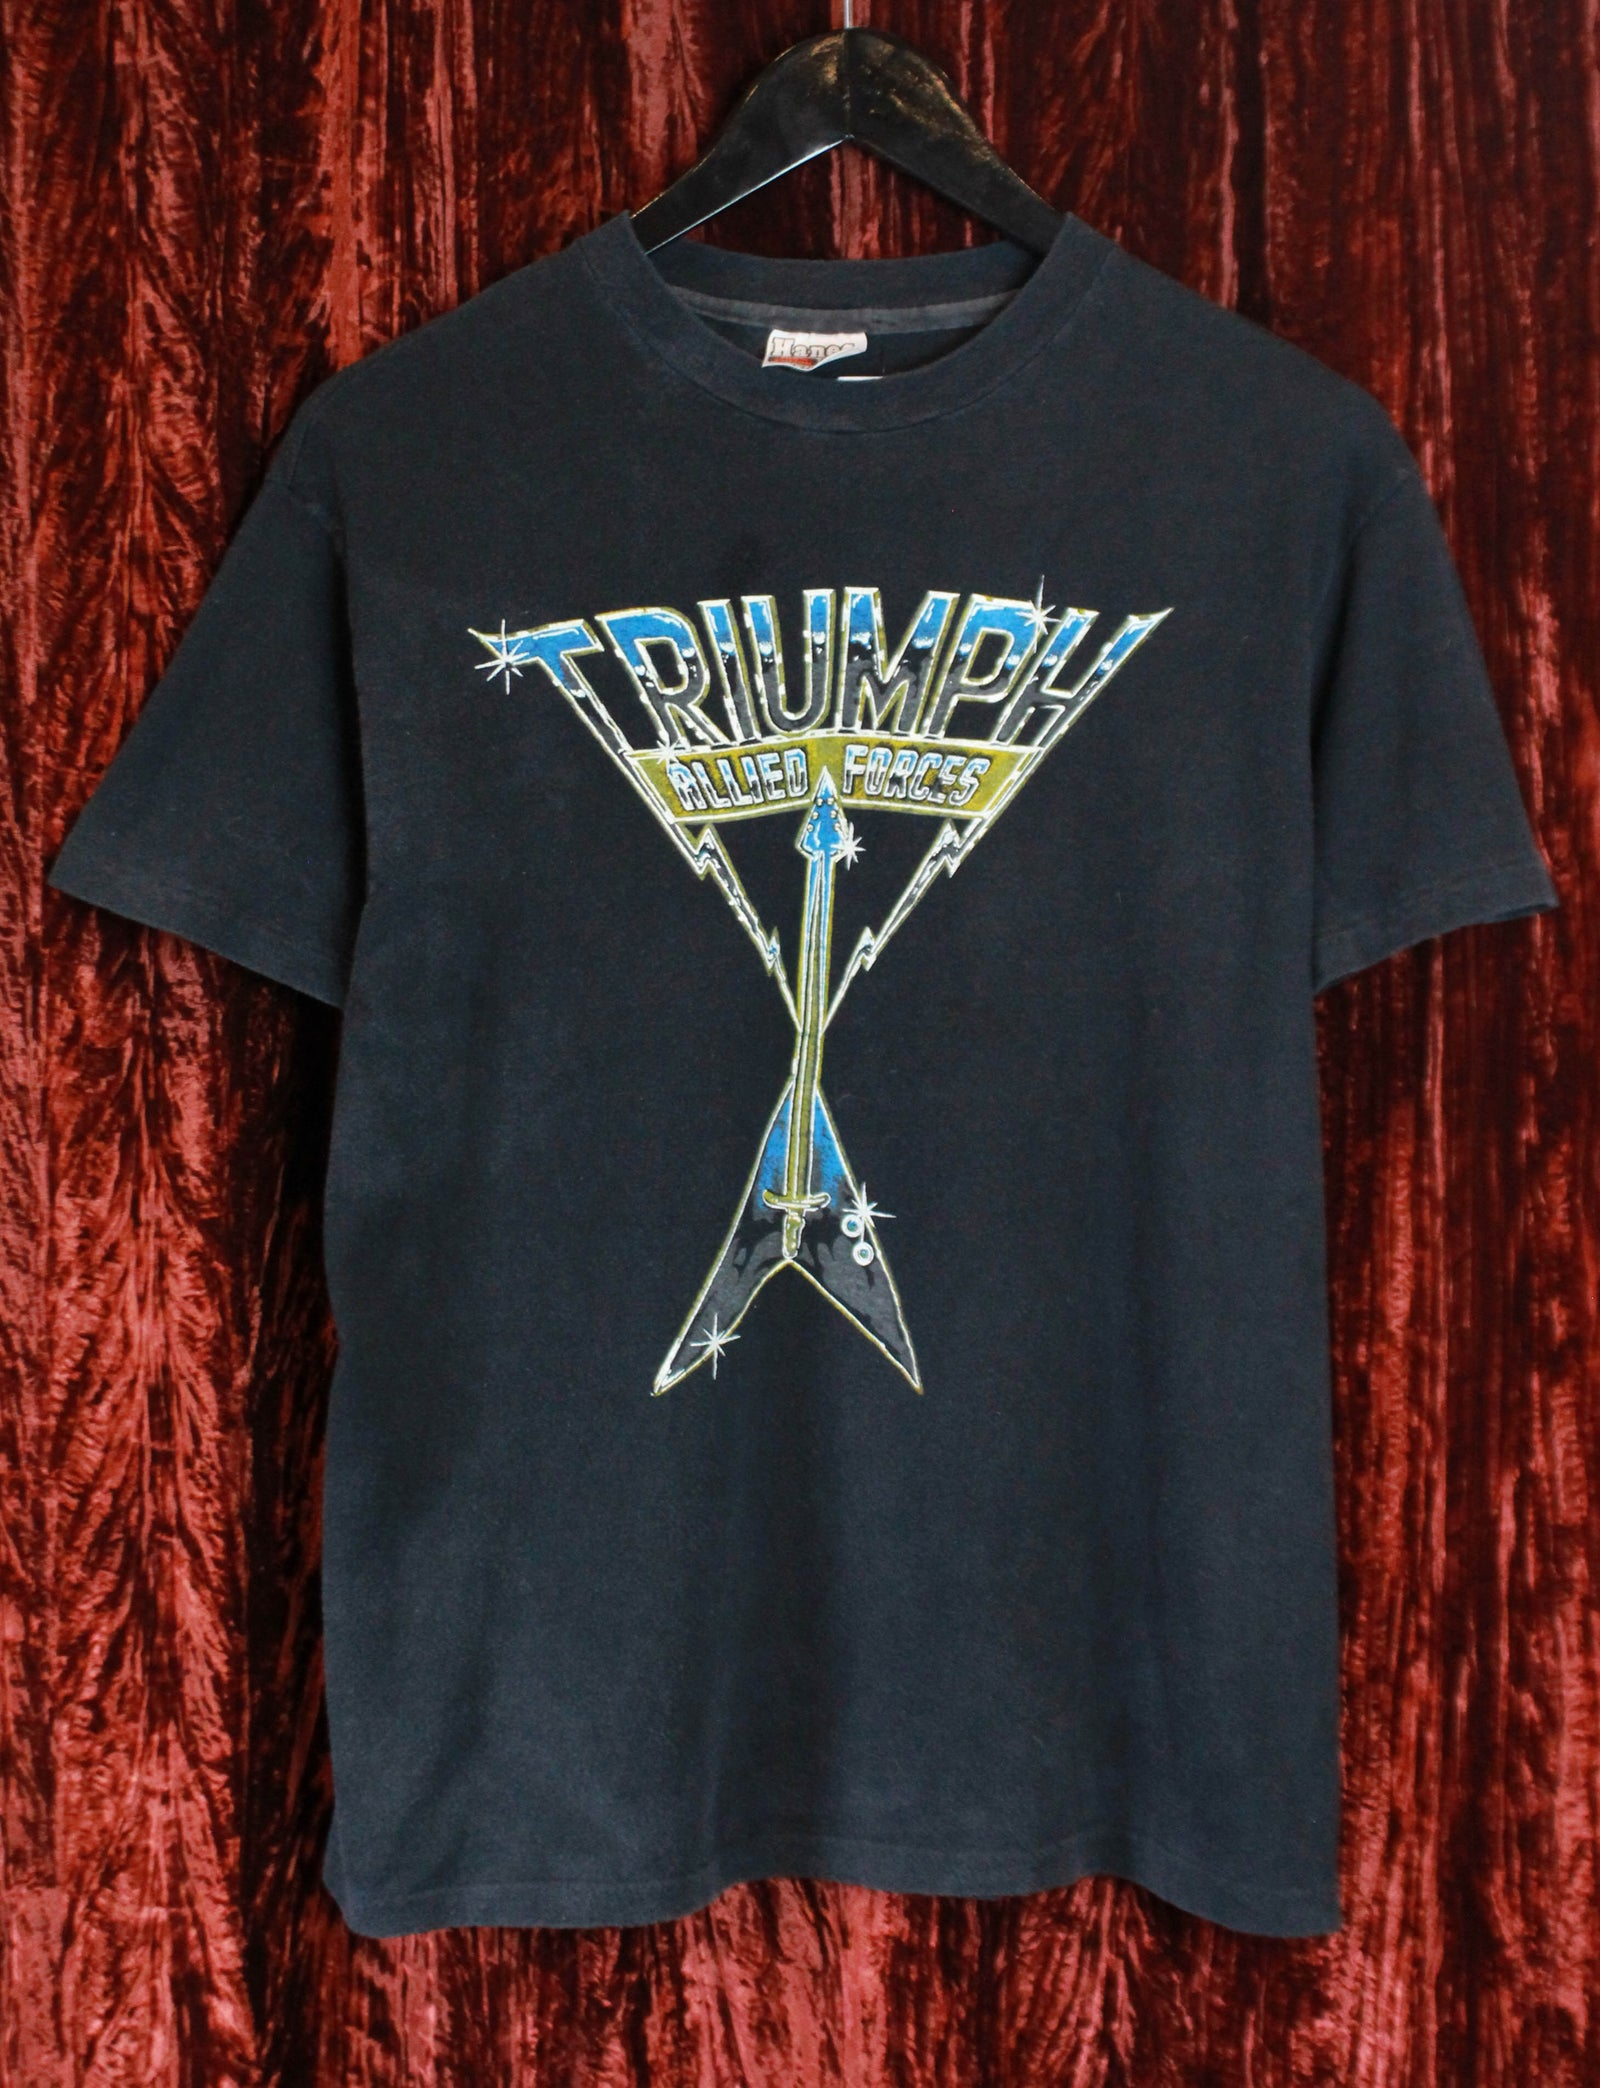 Vintage Triumph Concert T Shirt 1981 Allied Forces World Invasion Tour Unisex Medium